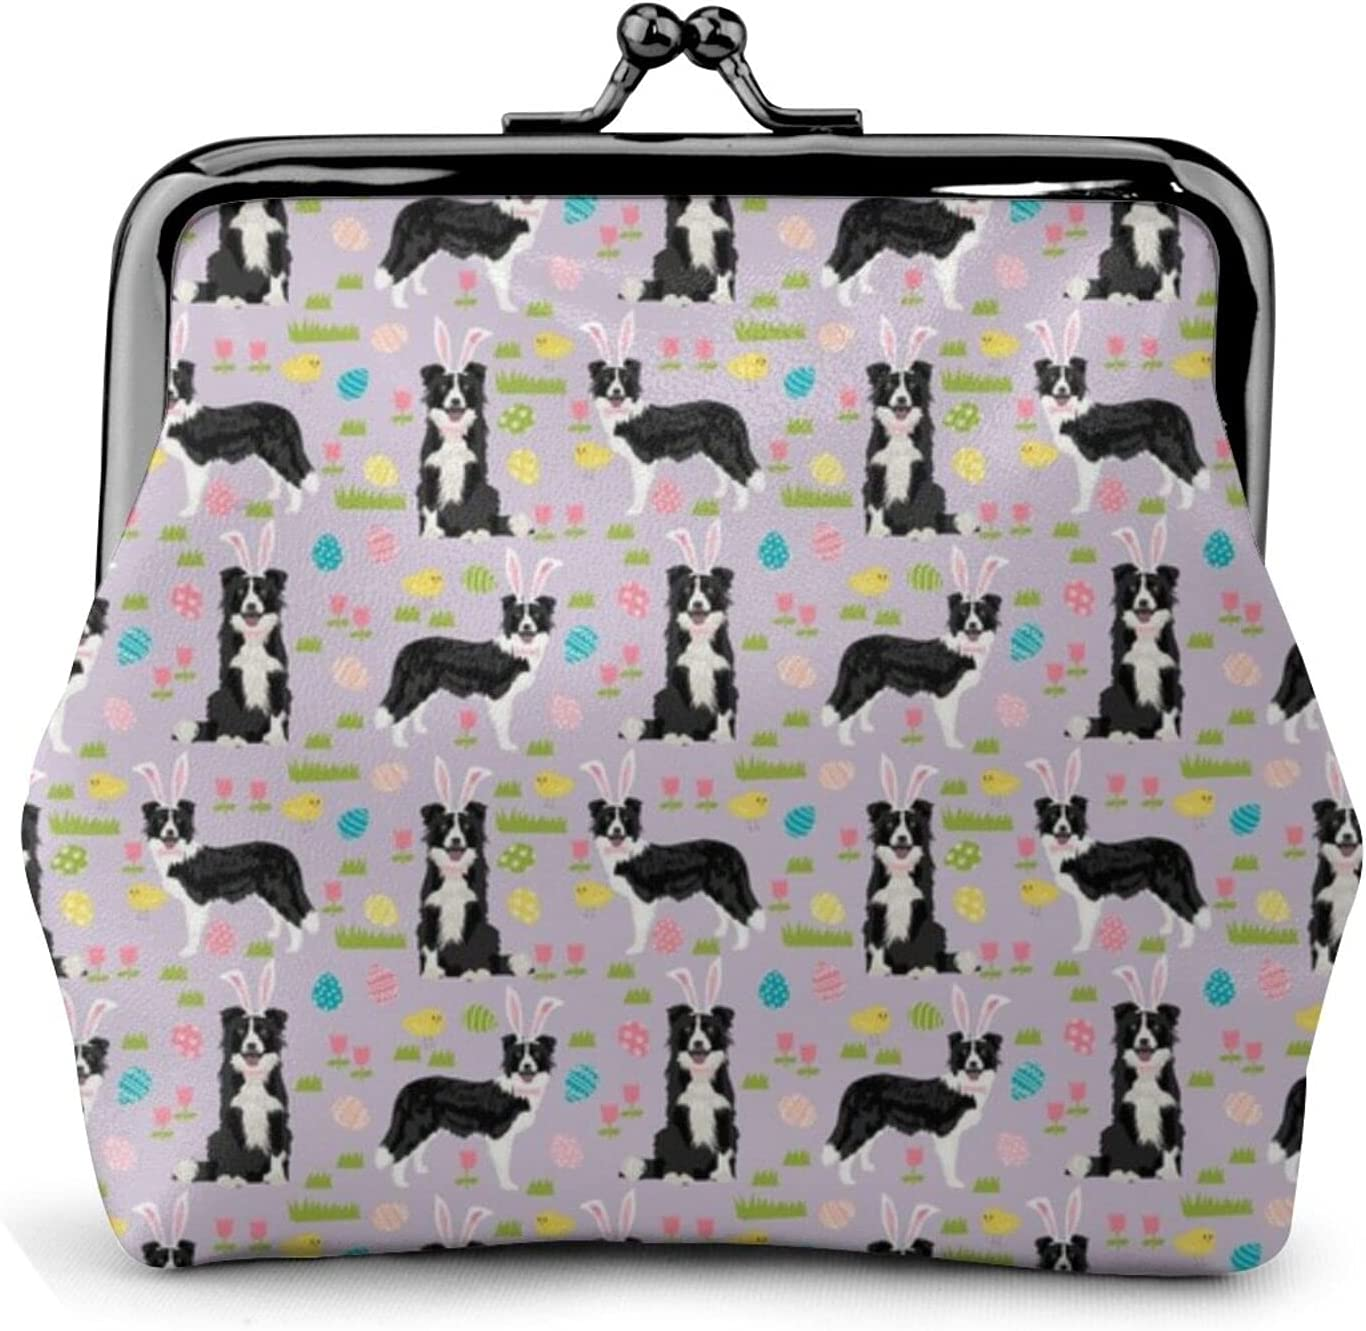 Border Collie Spring 839 Coin Purse Retro Money Pouch with Kiss-lock Buckle Small Wallet for Women and Girls